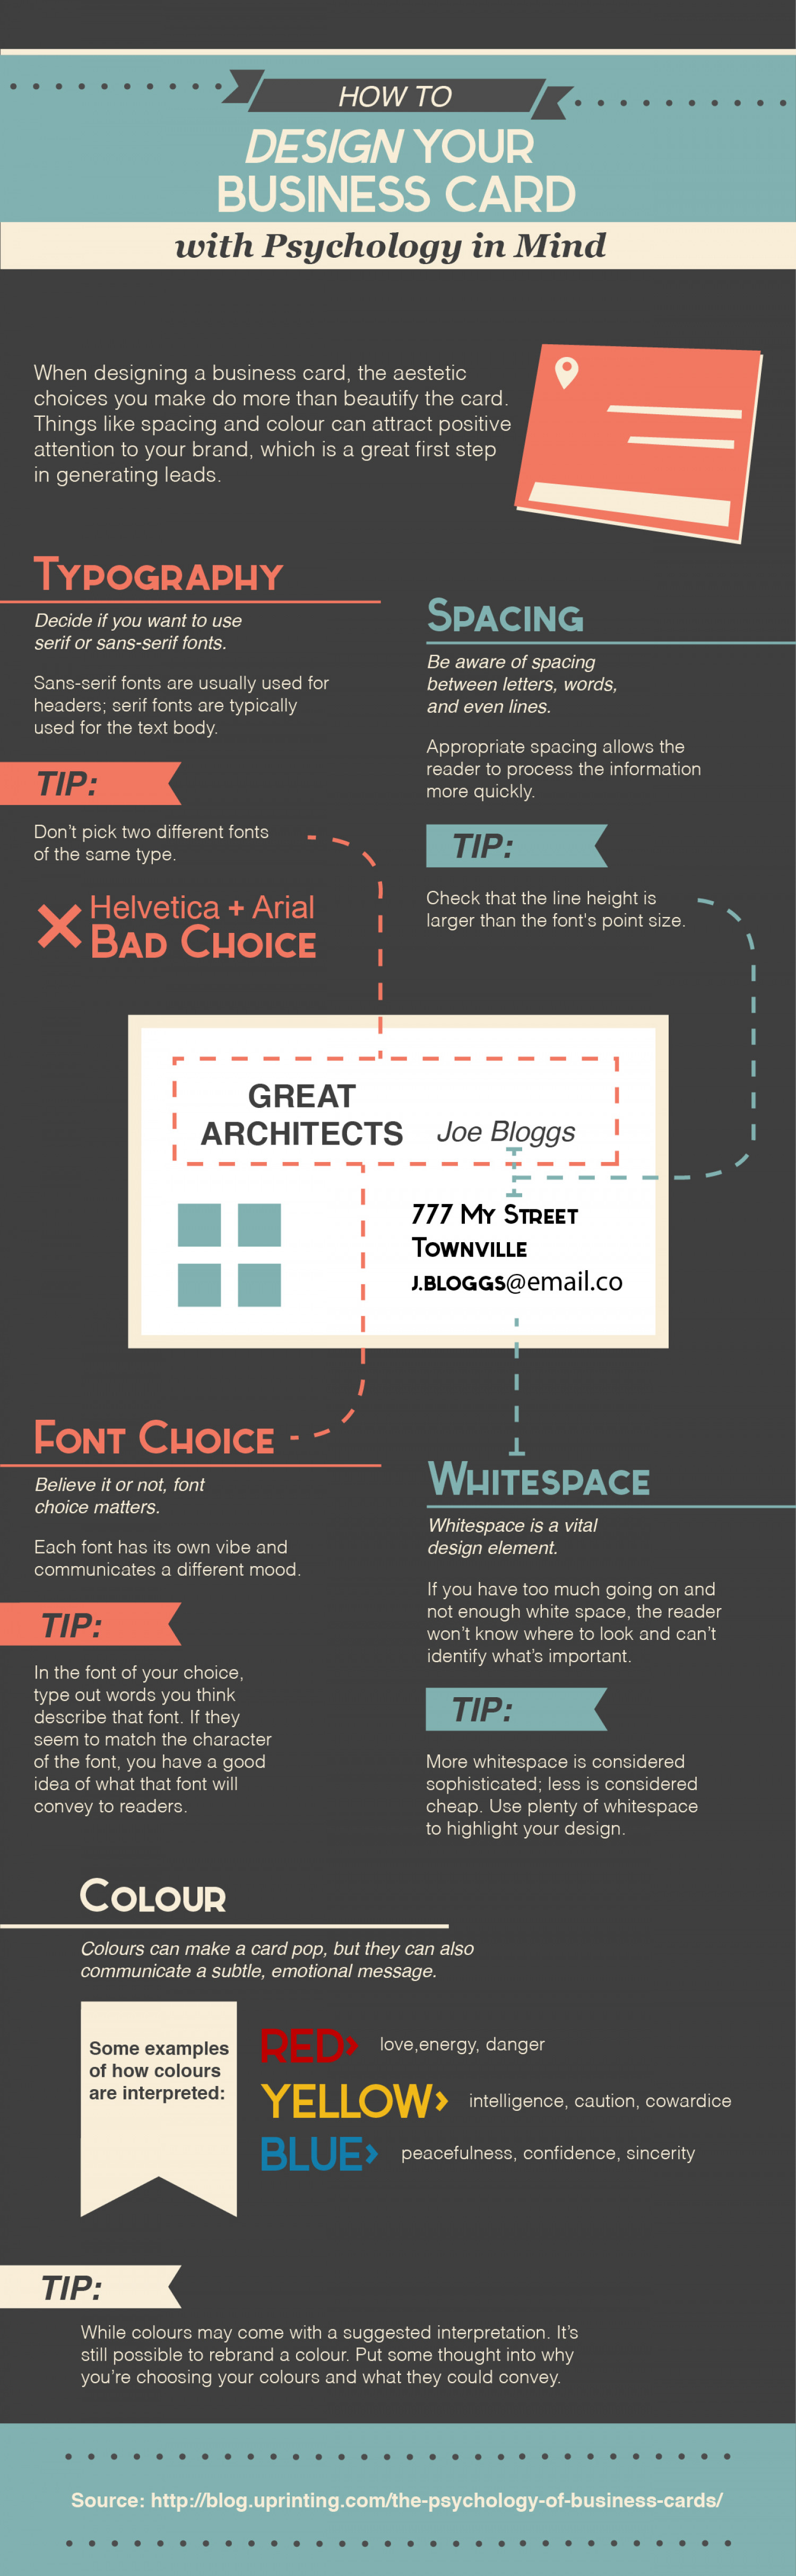 Designing the perfect business card Infographic